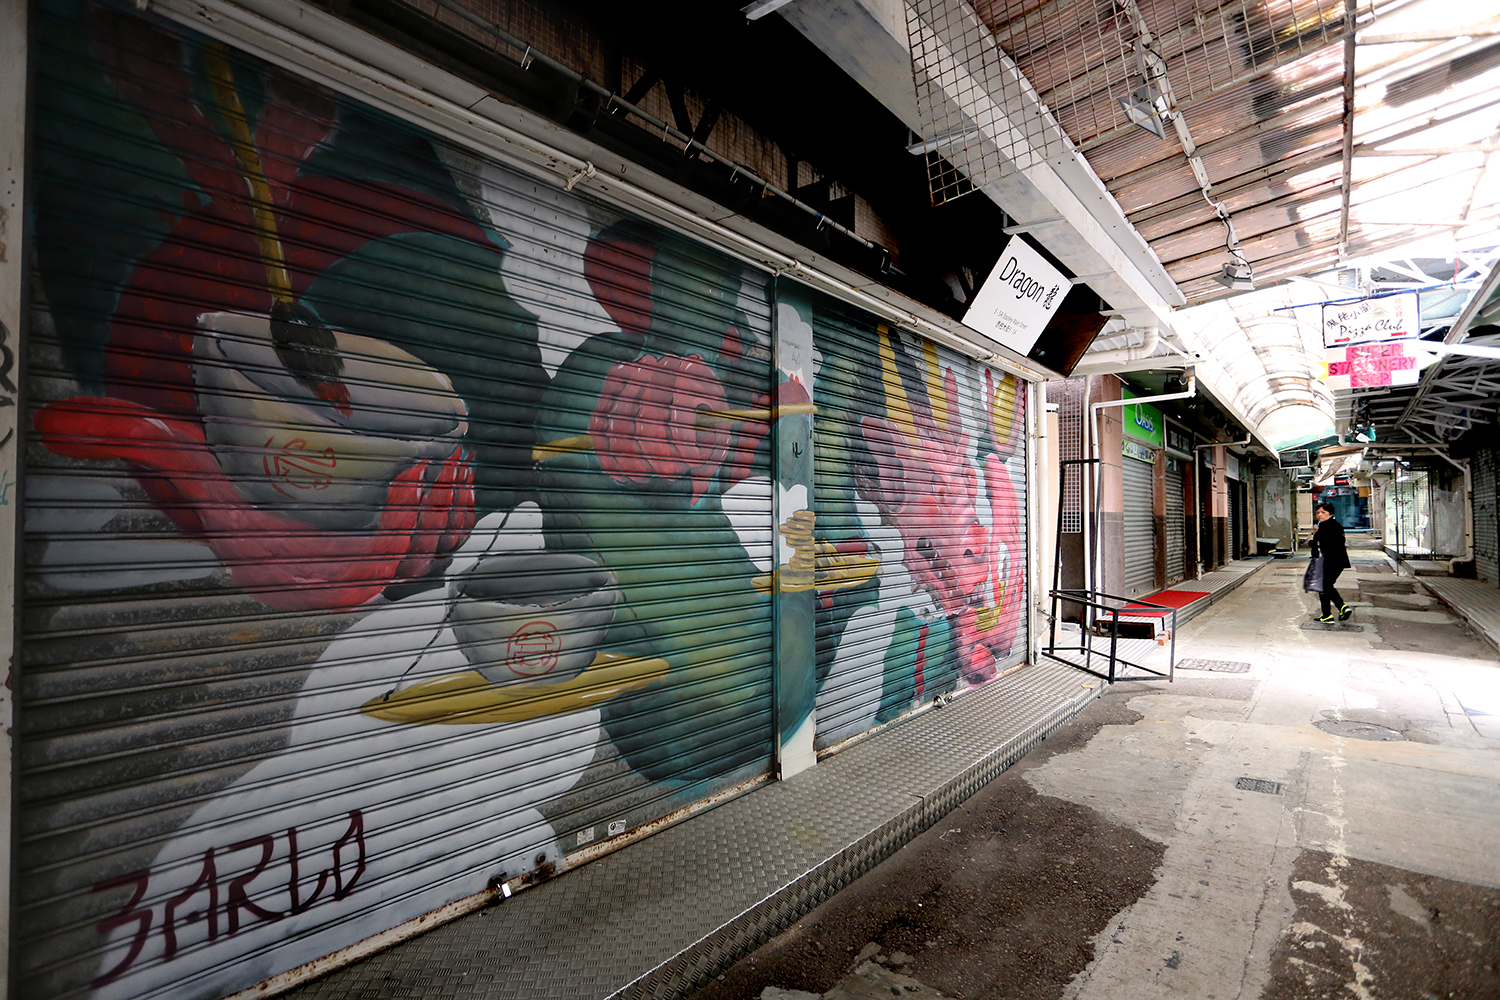 barlo-new-shutter-at-stanley-market-hong-kong-08